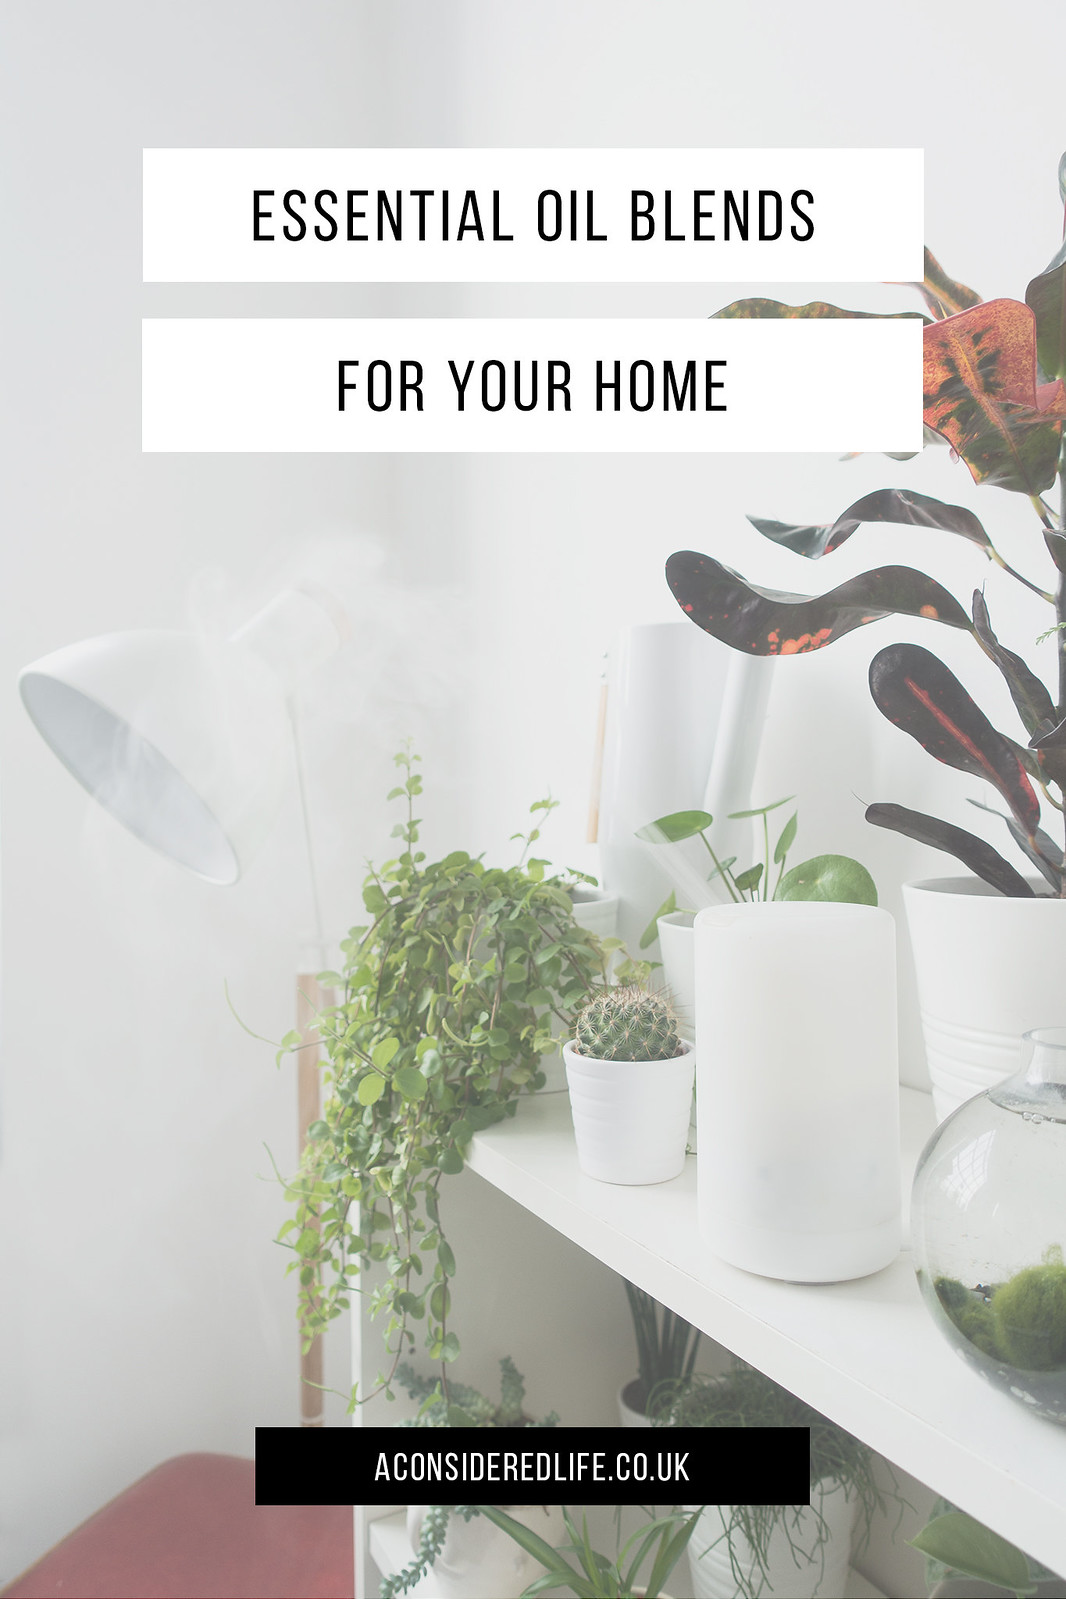 Essential Oil Blends For Your Home